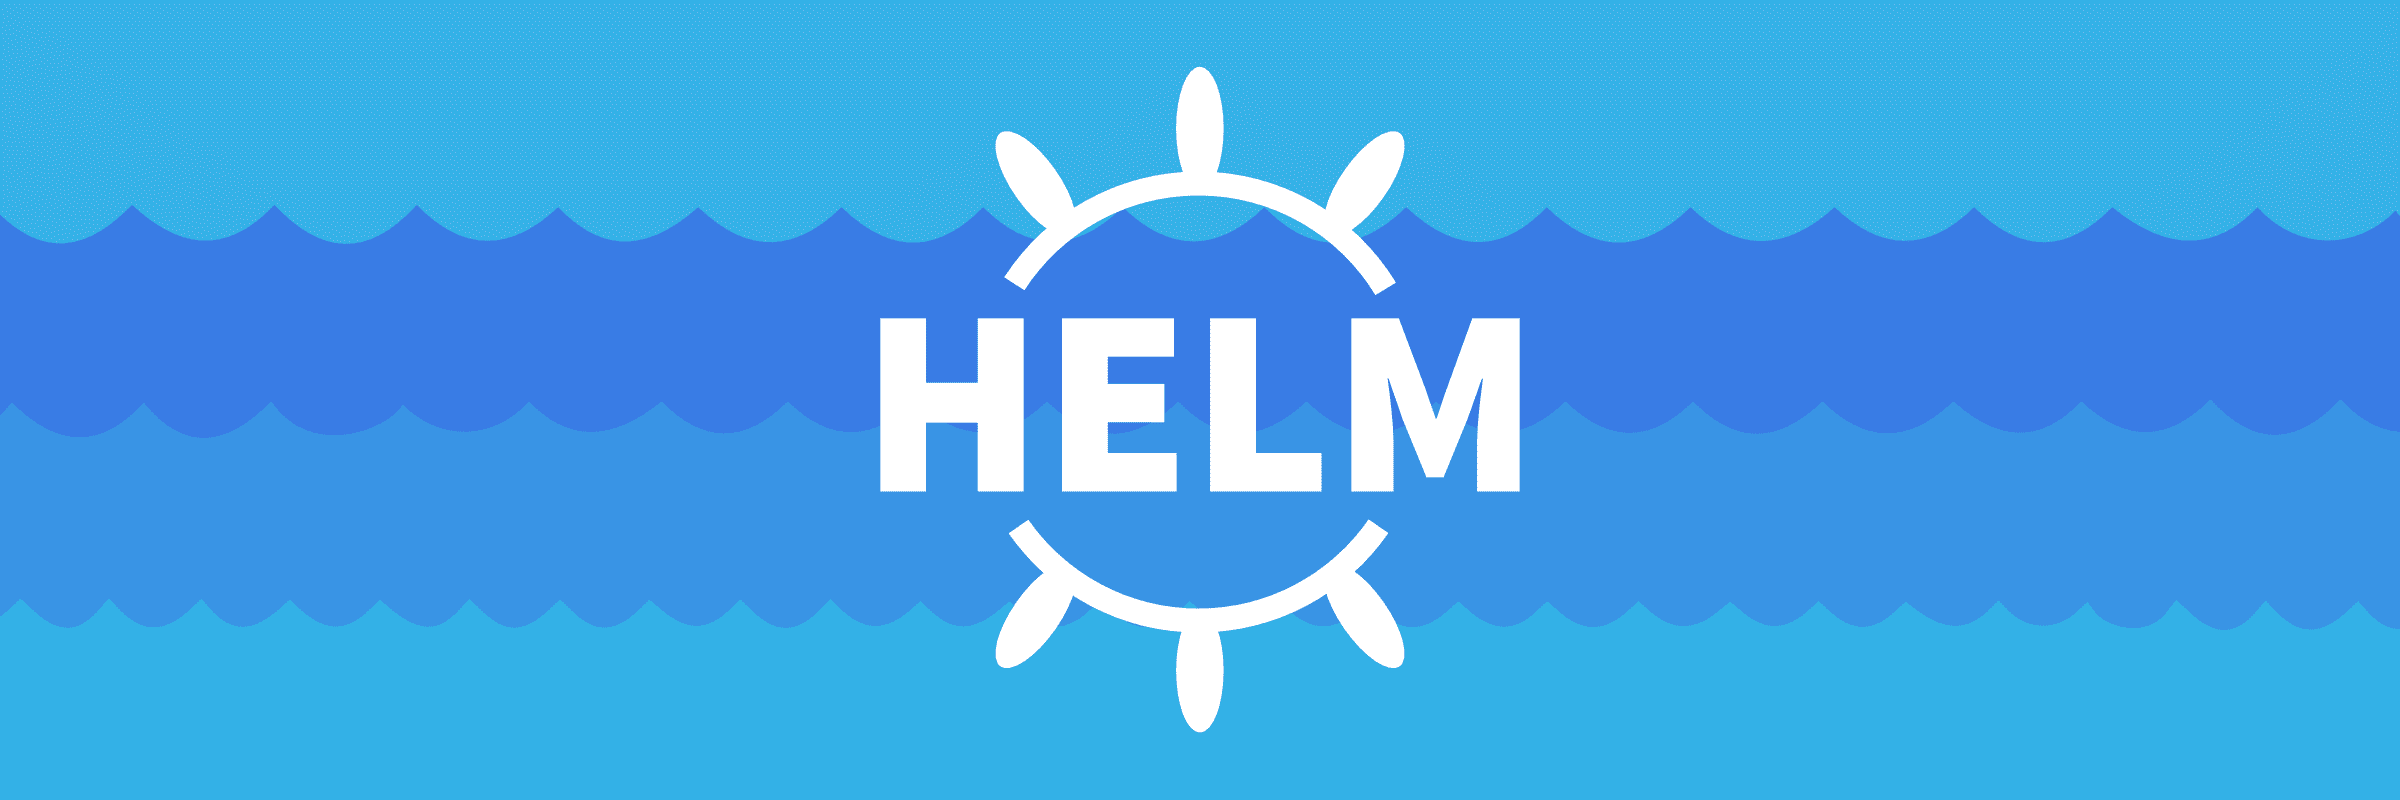 New action: Helm